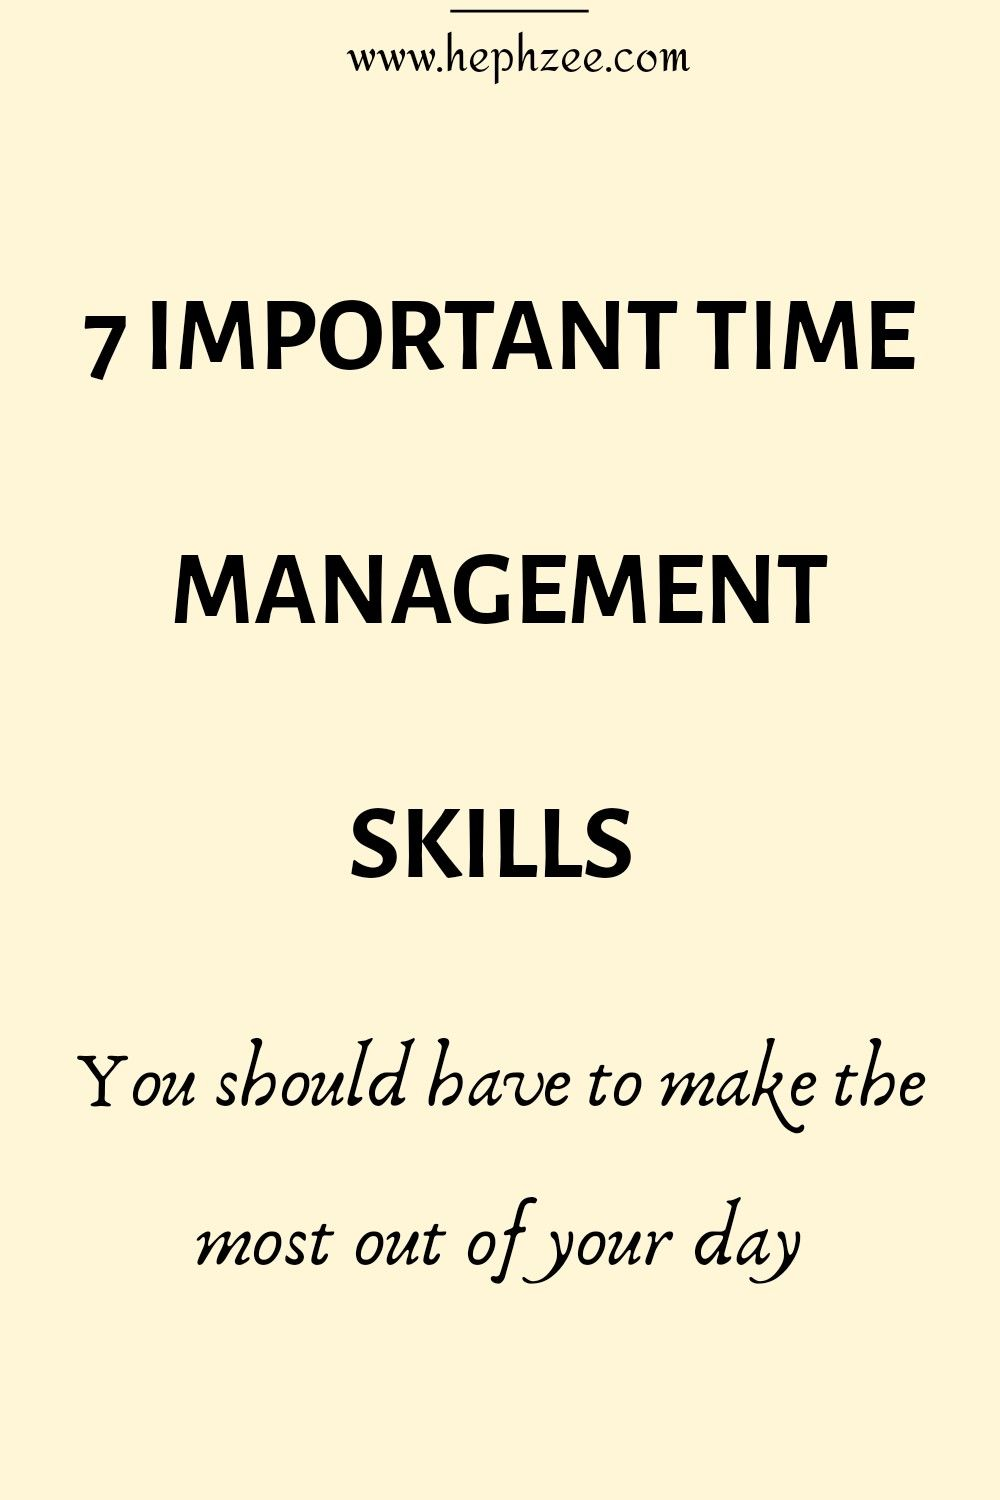 7 Important Time Management Skills Time Management Skills Time Management Tips Management Tips